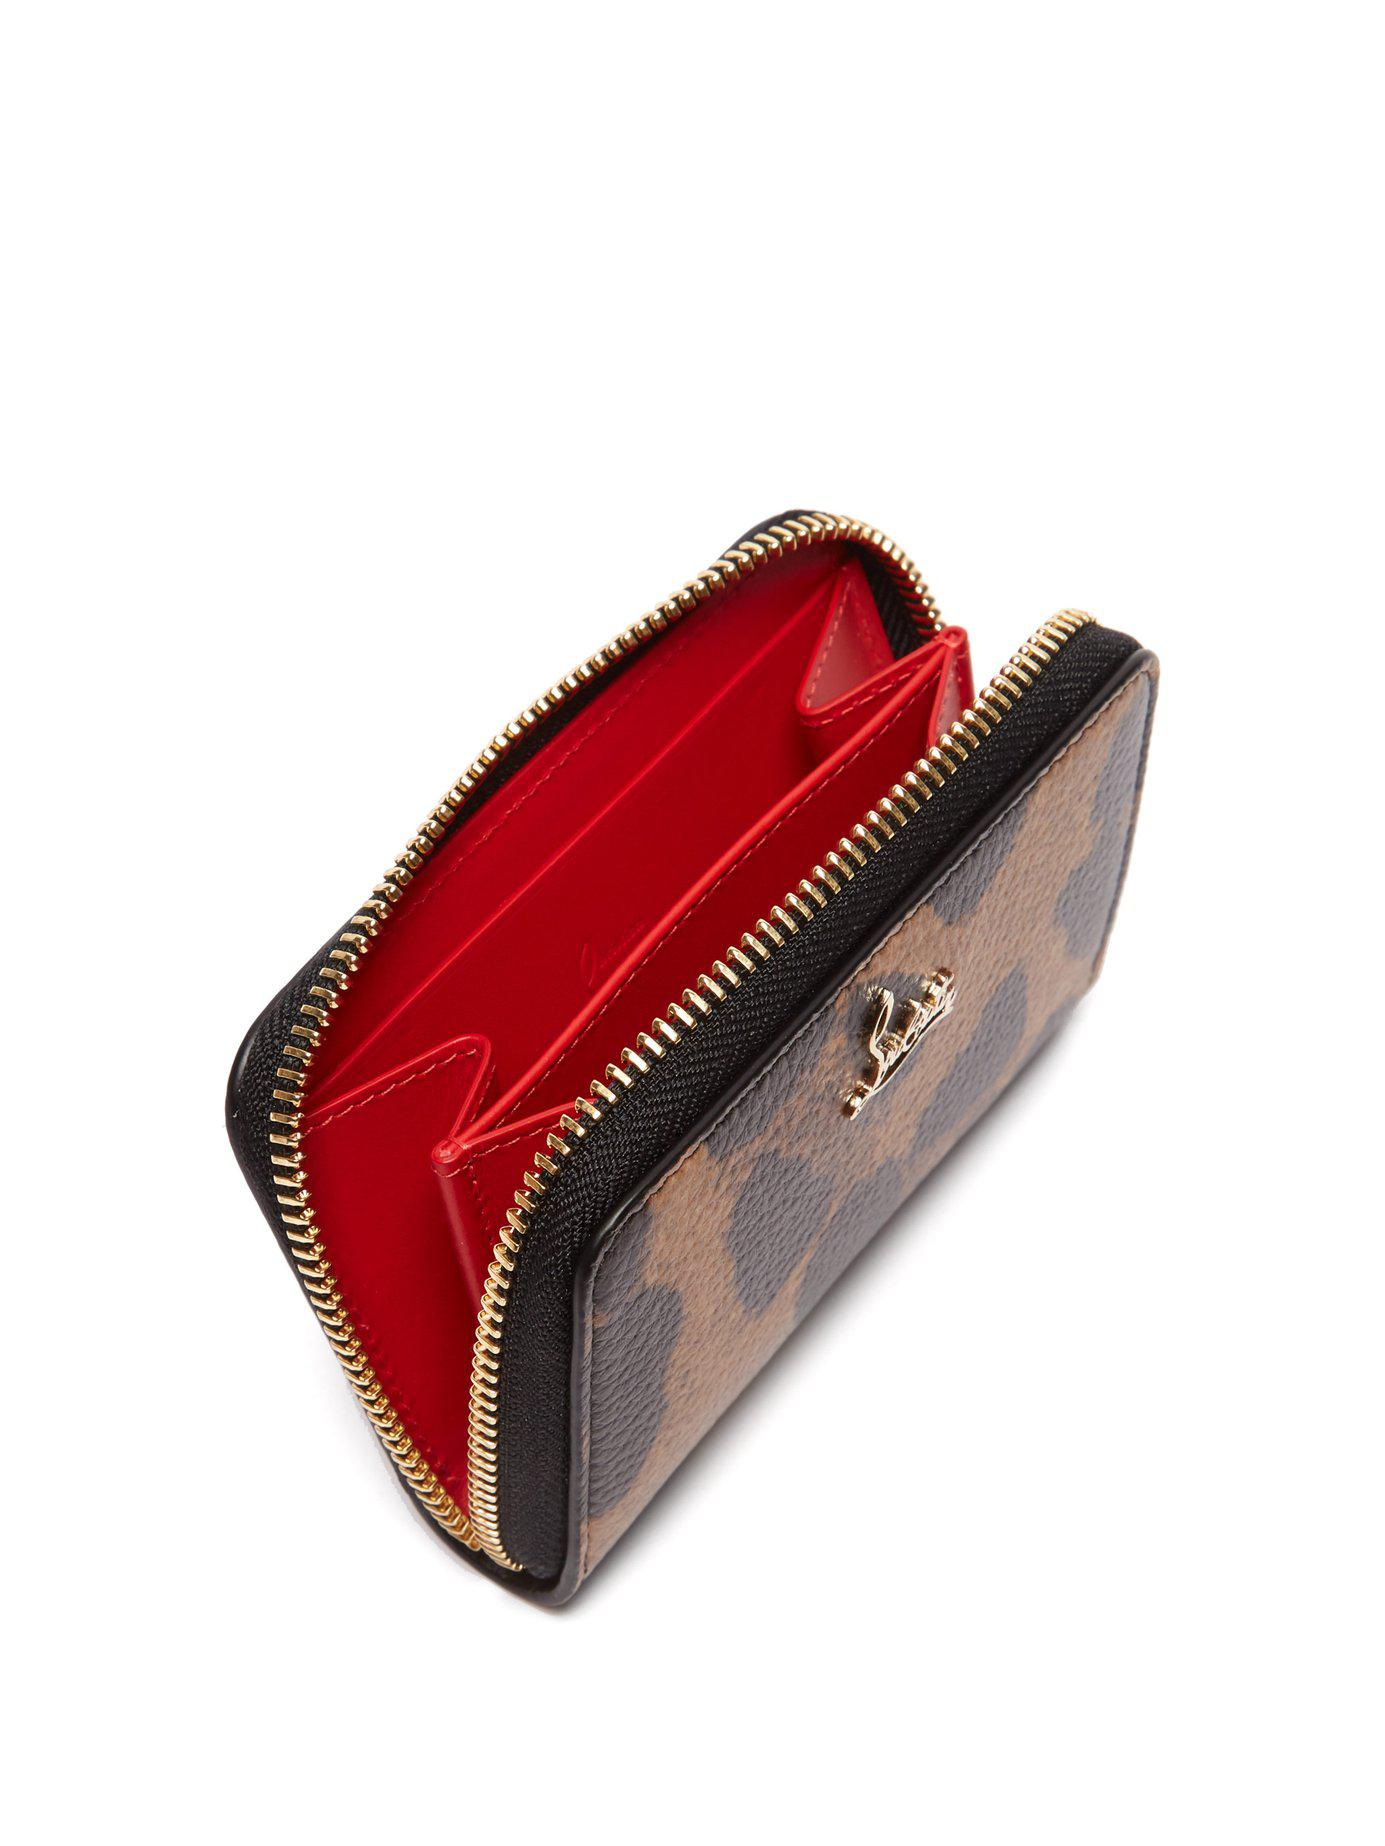 22926a3af Lyst - Christian Louboutin Panettone Leopard Print Leather Coin Purse in  Brown